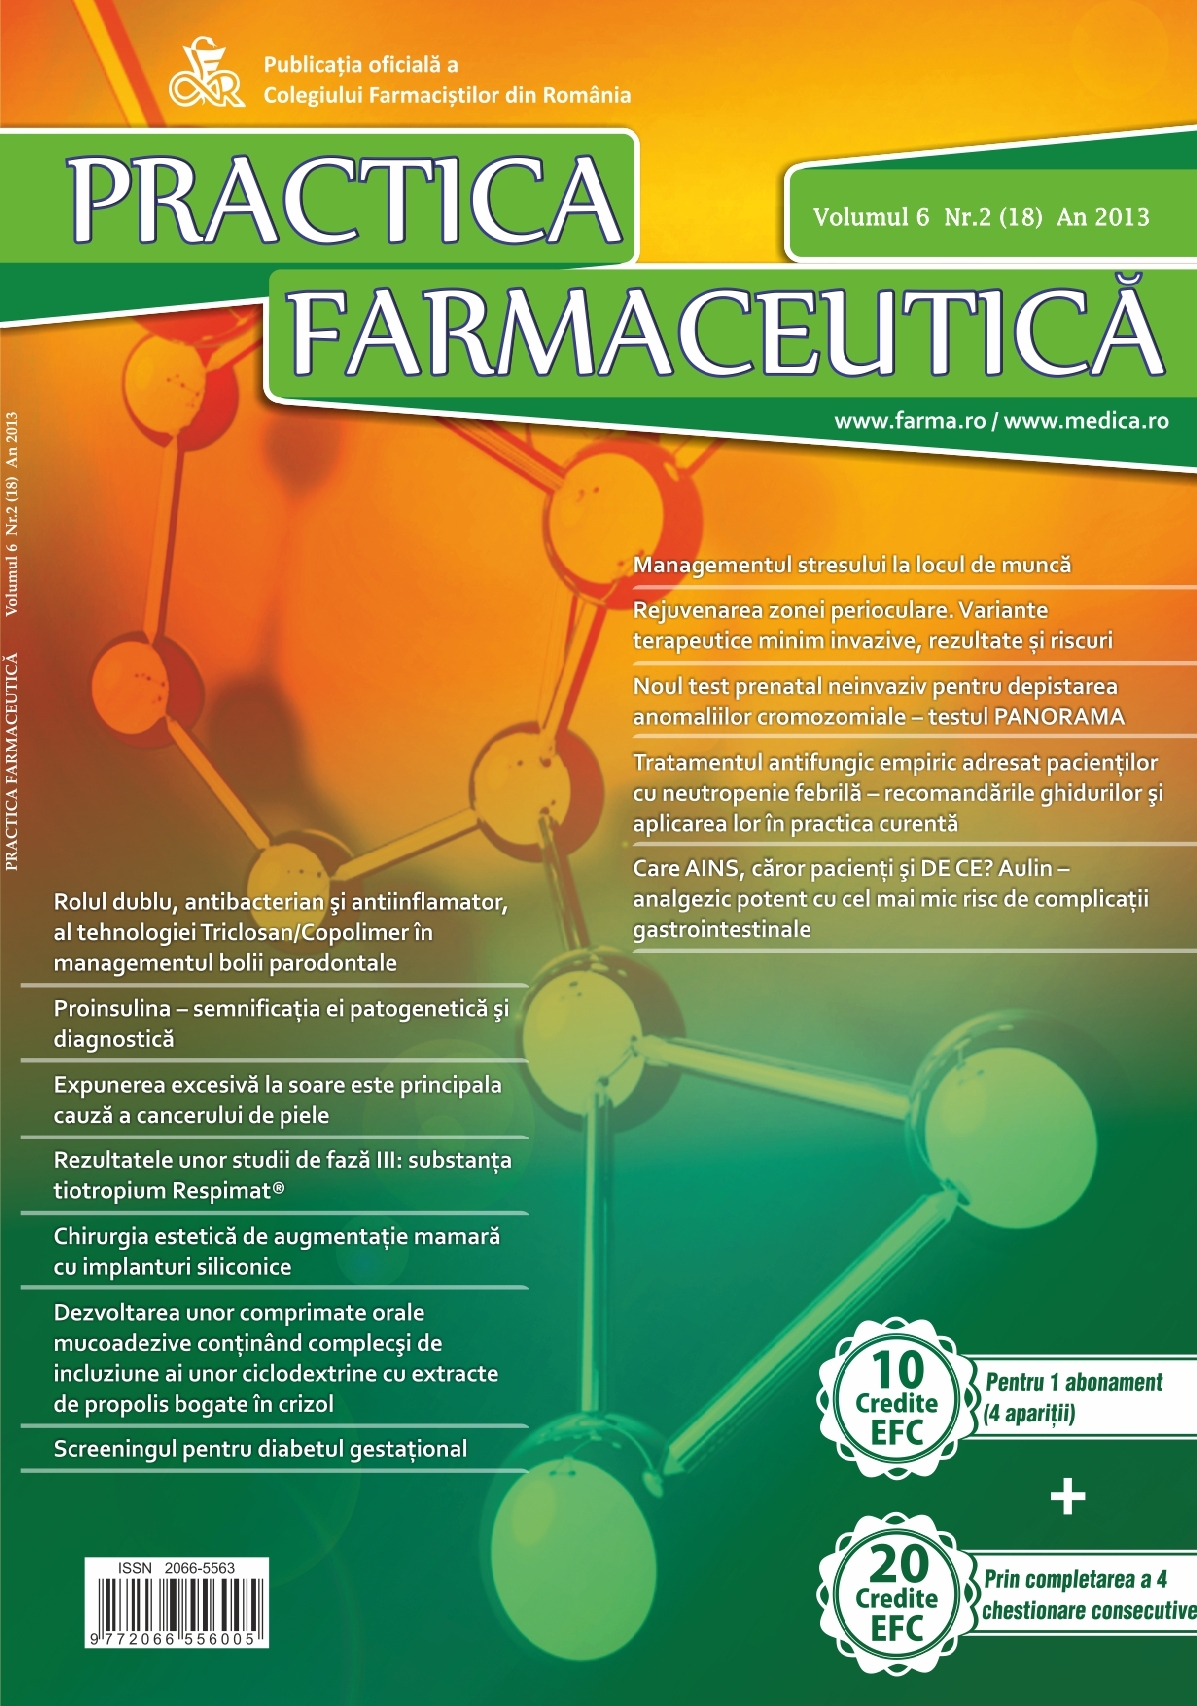 Revista Practica Farmaceutica, Vol. VI, No. 2 (18), 2013